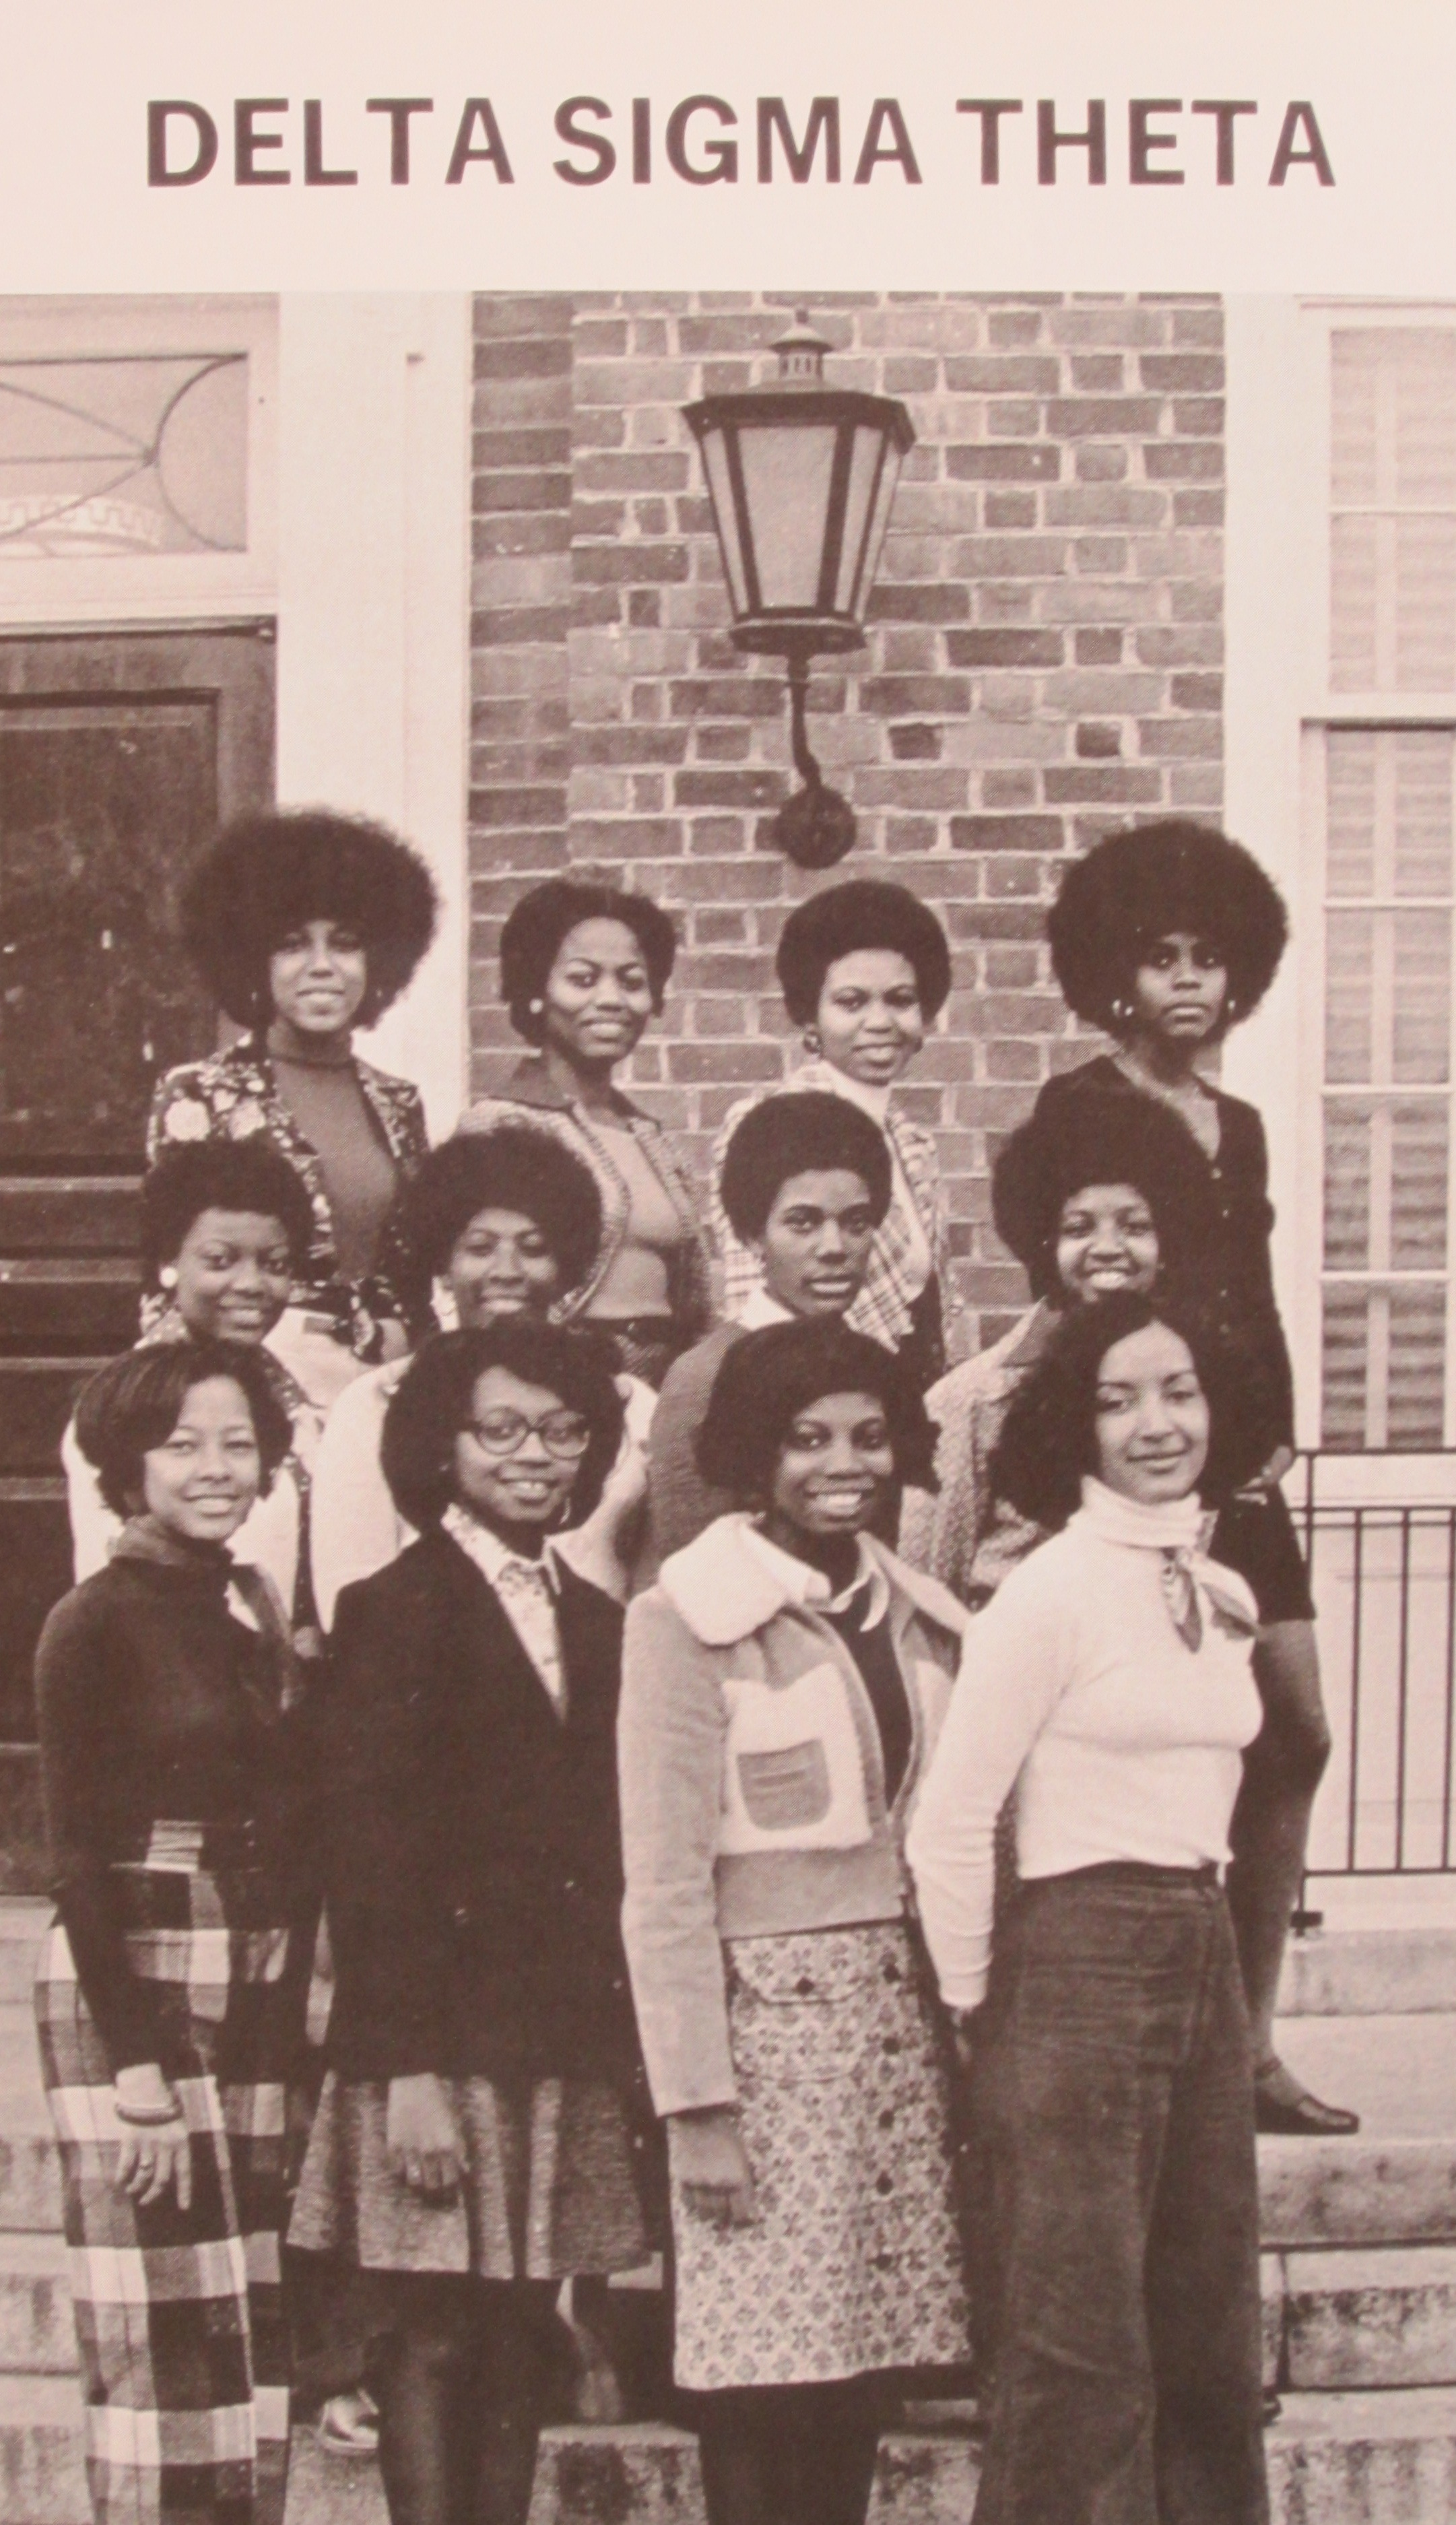 Photograph of U.Va.'s Deltas from the 1975 Corks and Curls (LD. Photograph by Petrina Jackson)